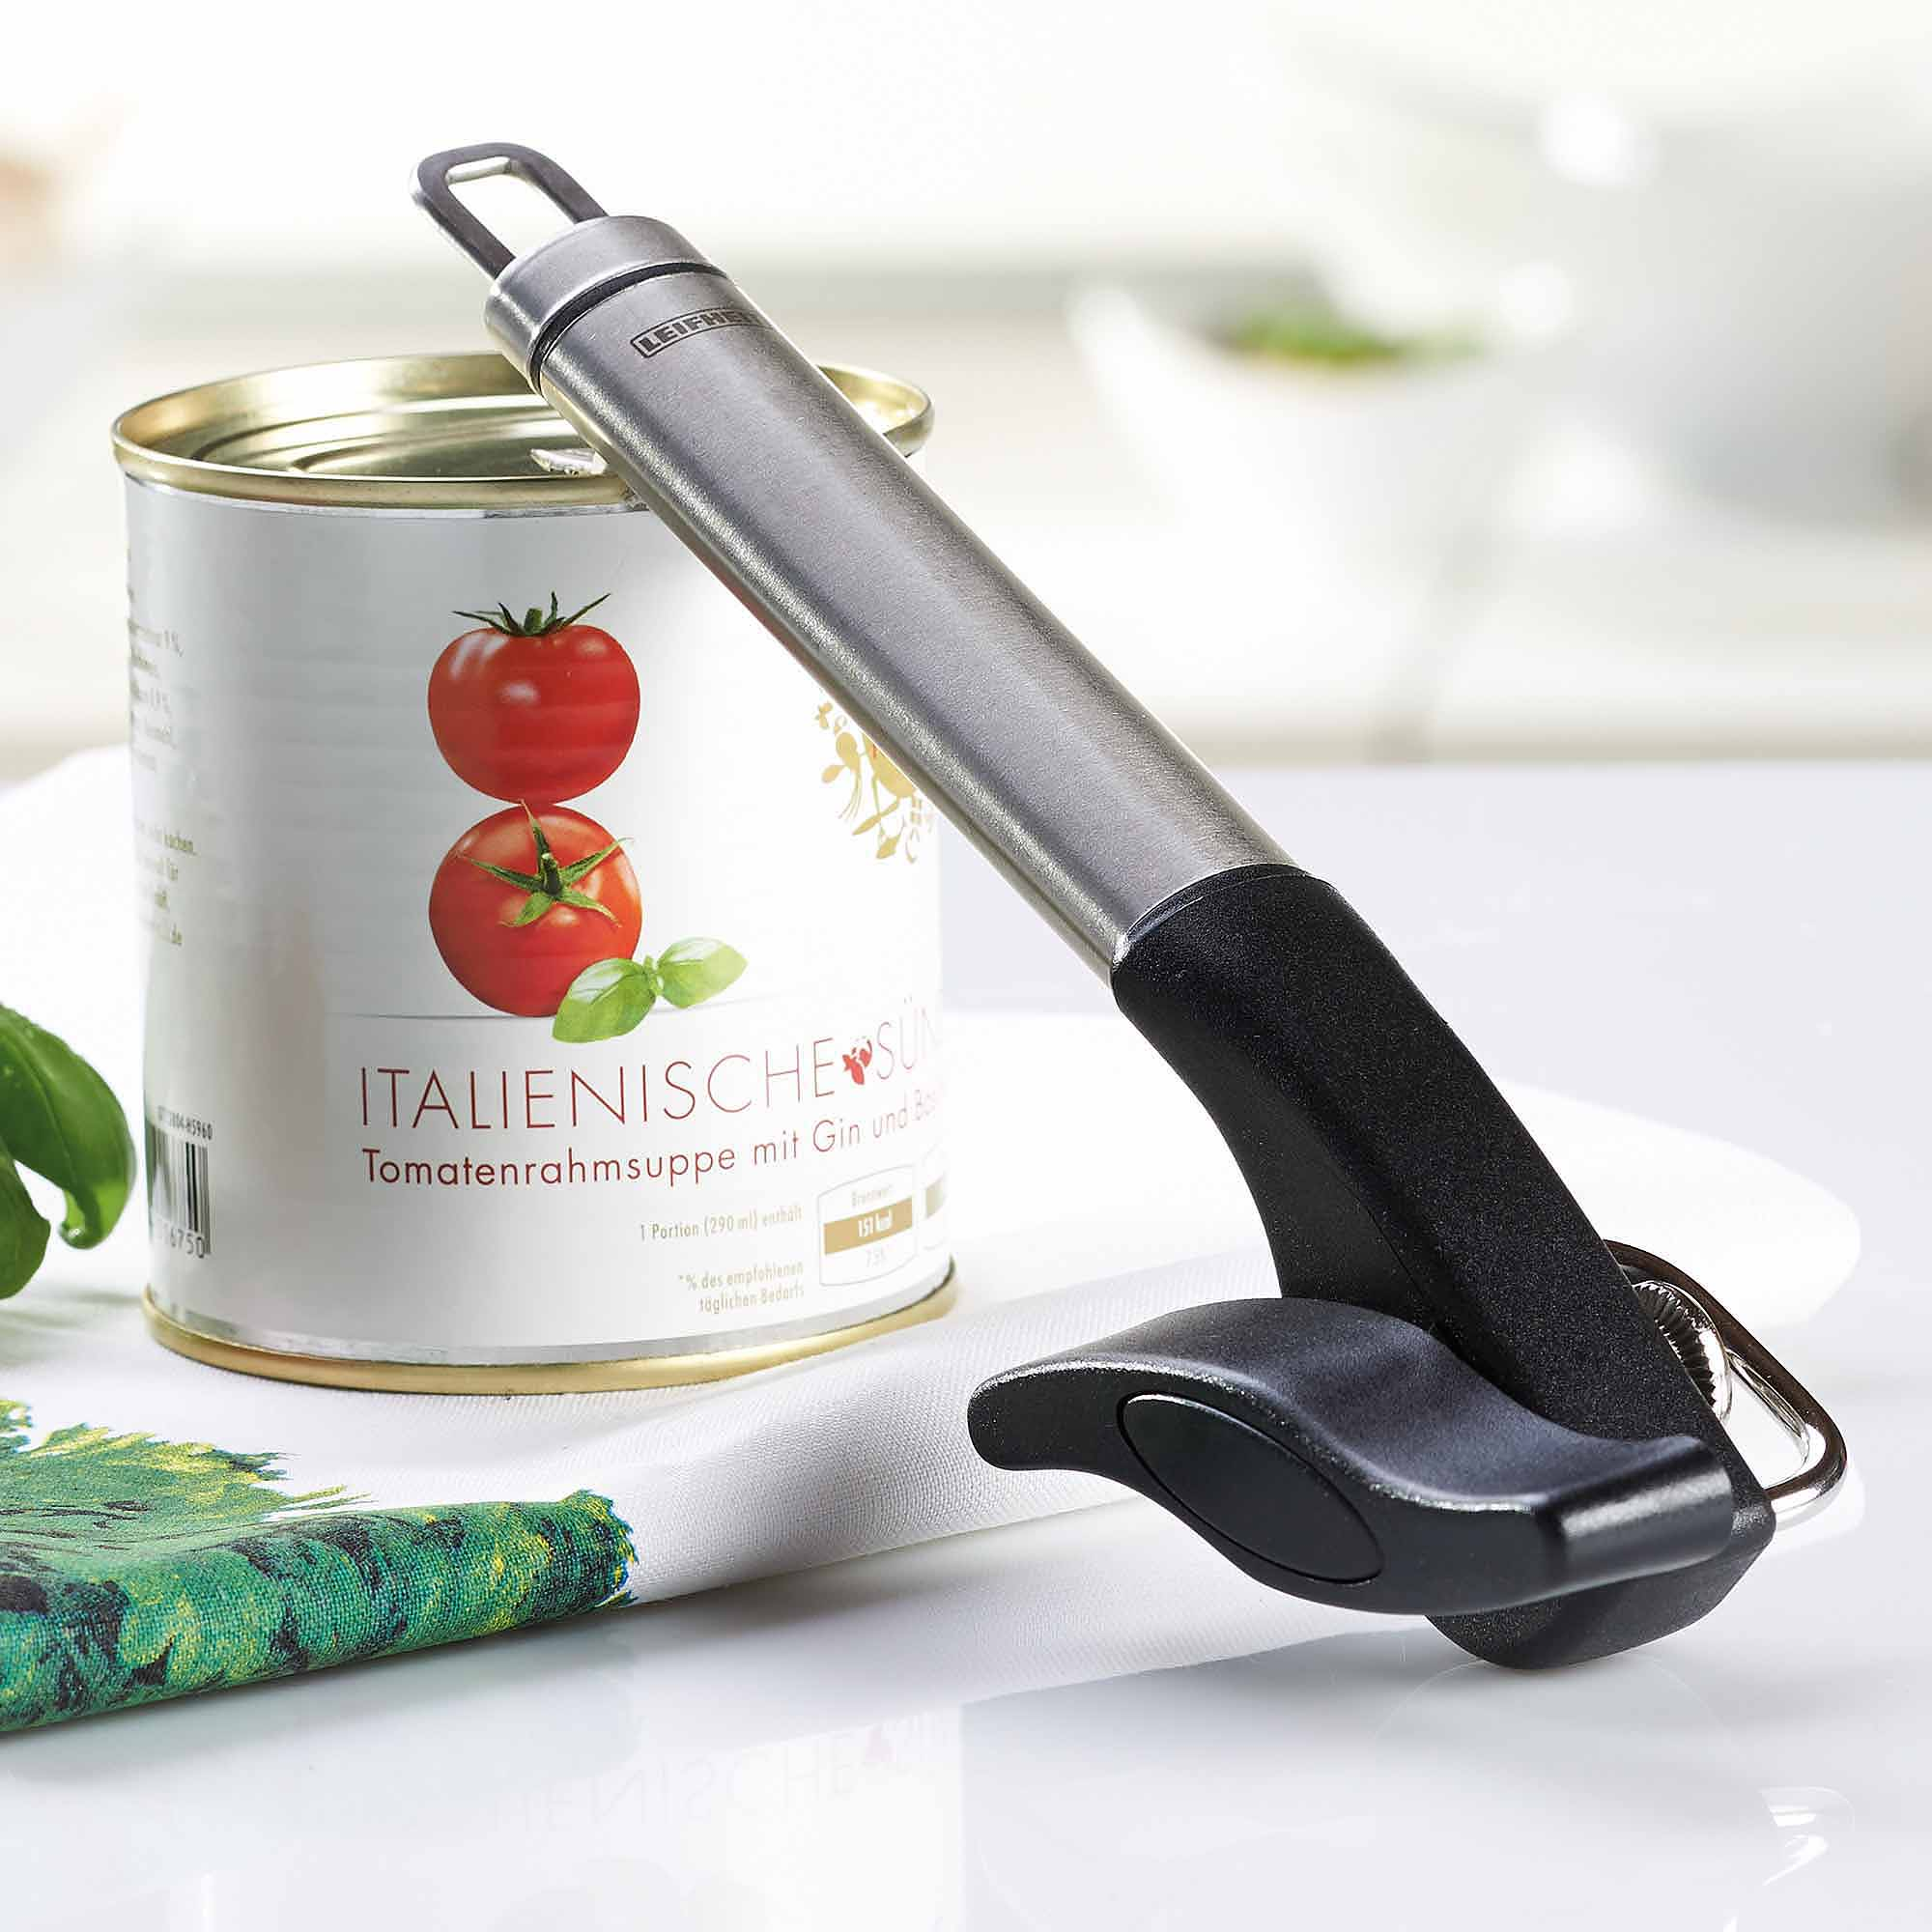 Leifheit Stainless Steel Safety Pro Single-Handle Can Opener, Black and Silver